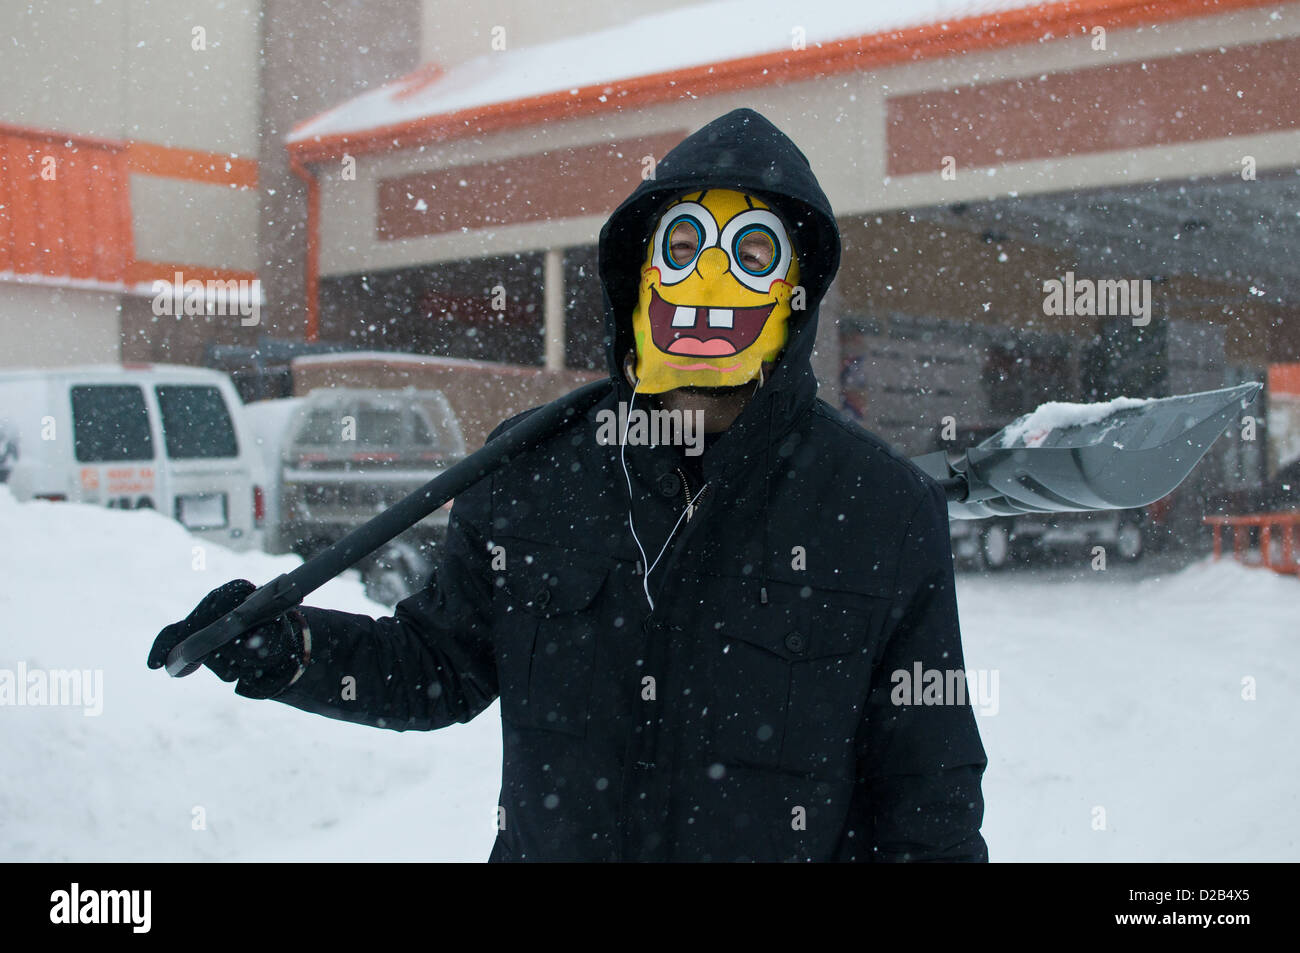 CHICAGO - FEB 2: A man takes a break from shoveling snow following a massive winter storm on February 2, 2011 in - Stock Image